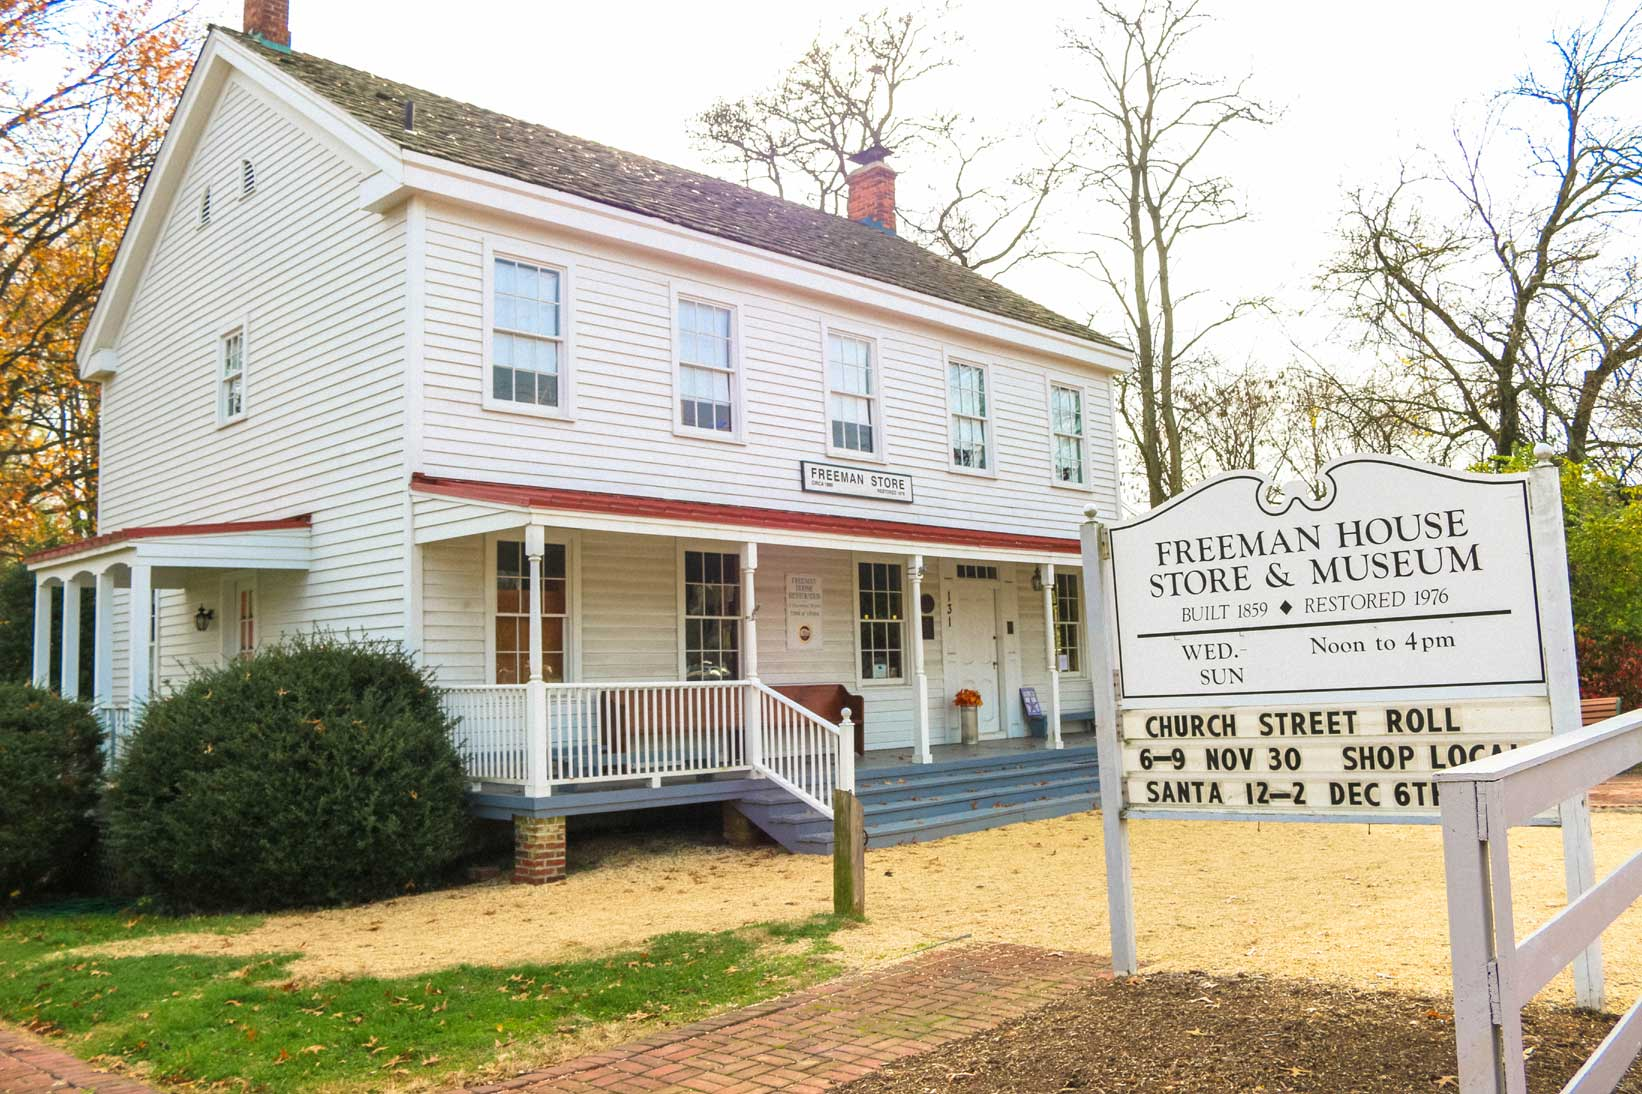 Freeman House Store and Museum in Vienna, VA